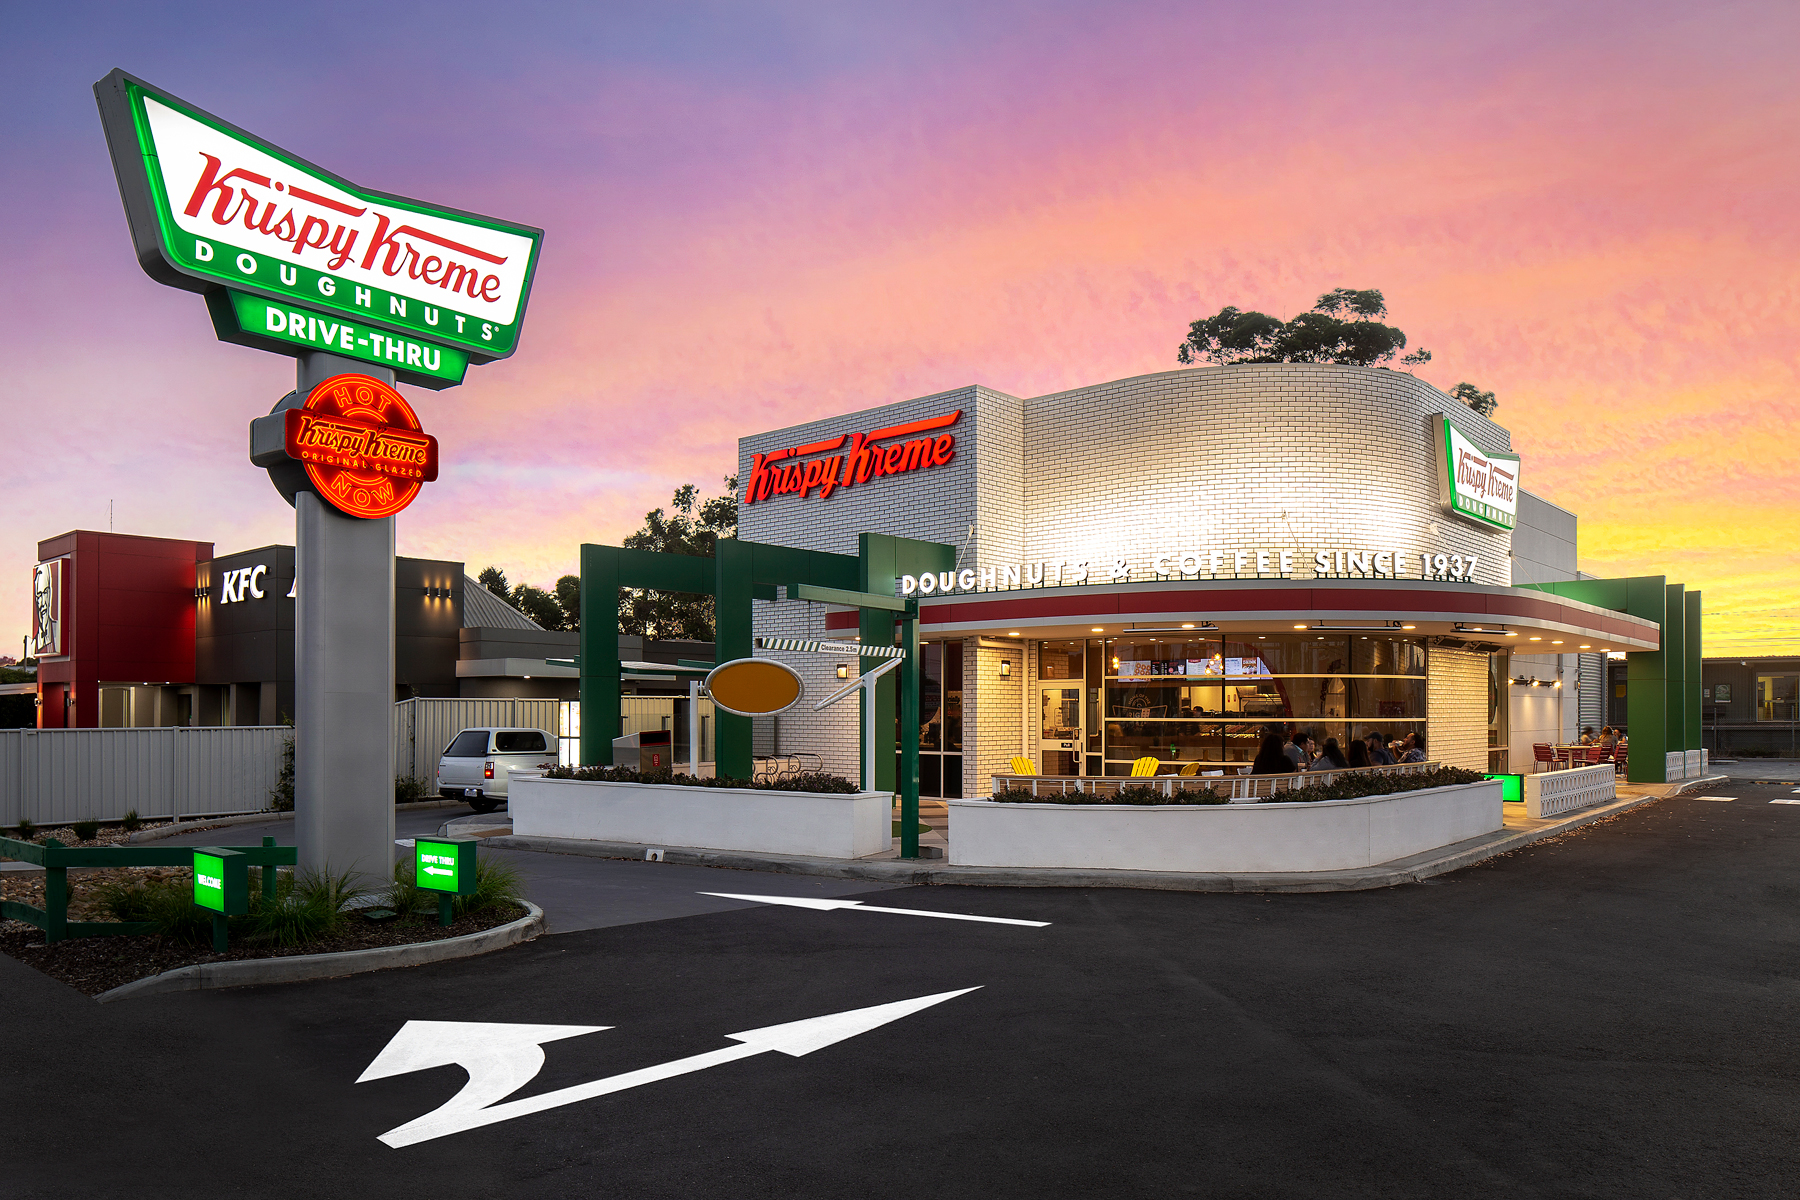 Krispy Kreme Fawkner | Lighting Inspiration | Unios